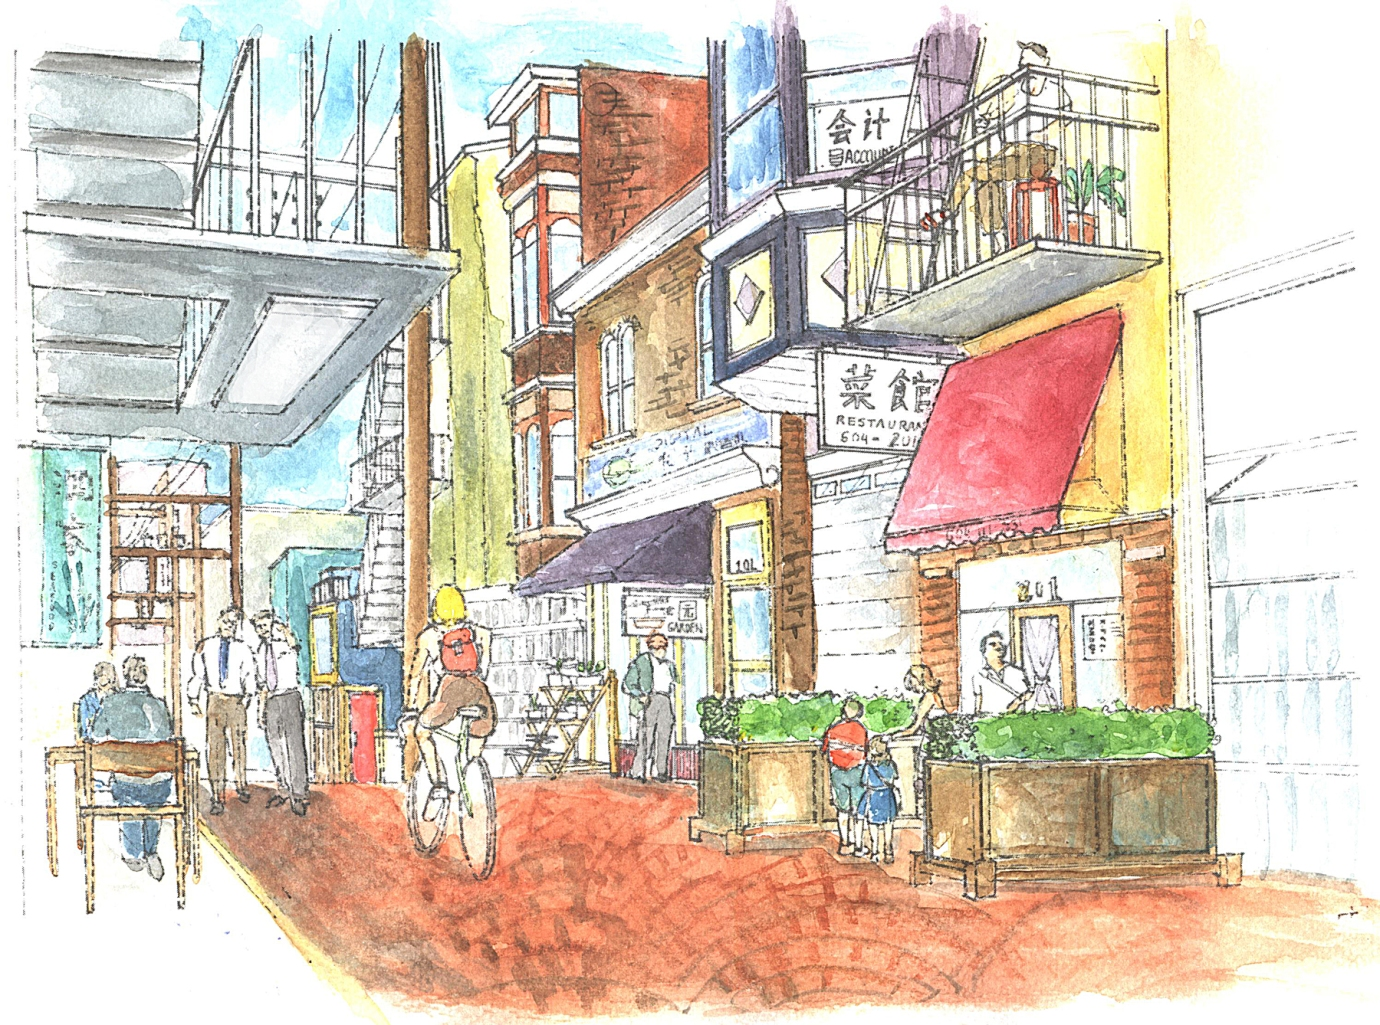 A conceptual rendering of how Vancouver's Chinatown laneways could look after restoration and revitalization. Courtesy AFH Vancouver